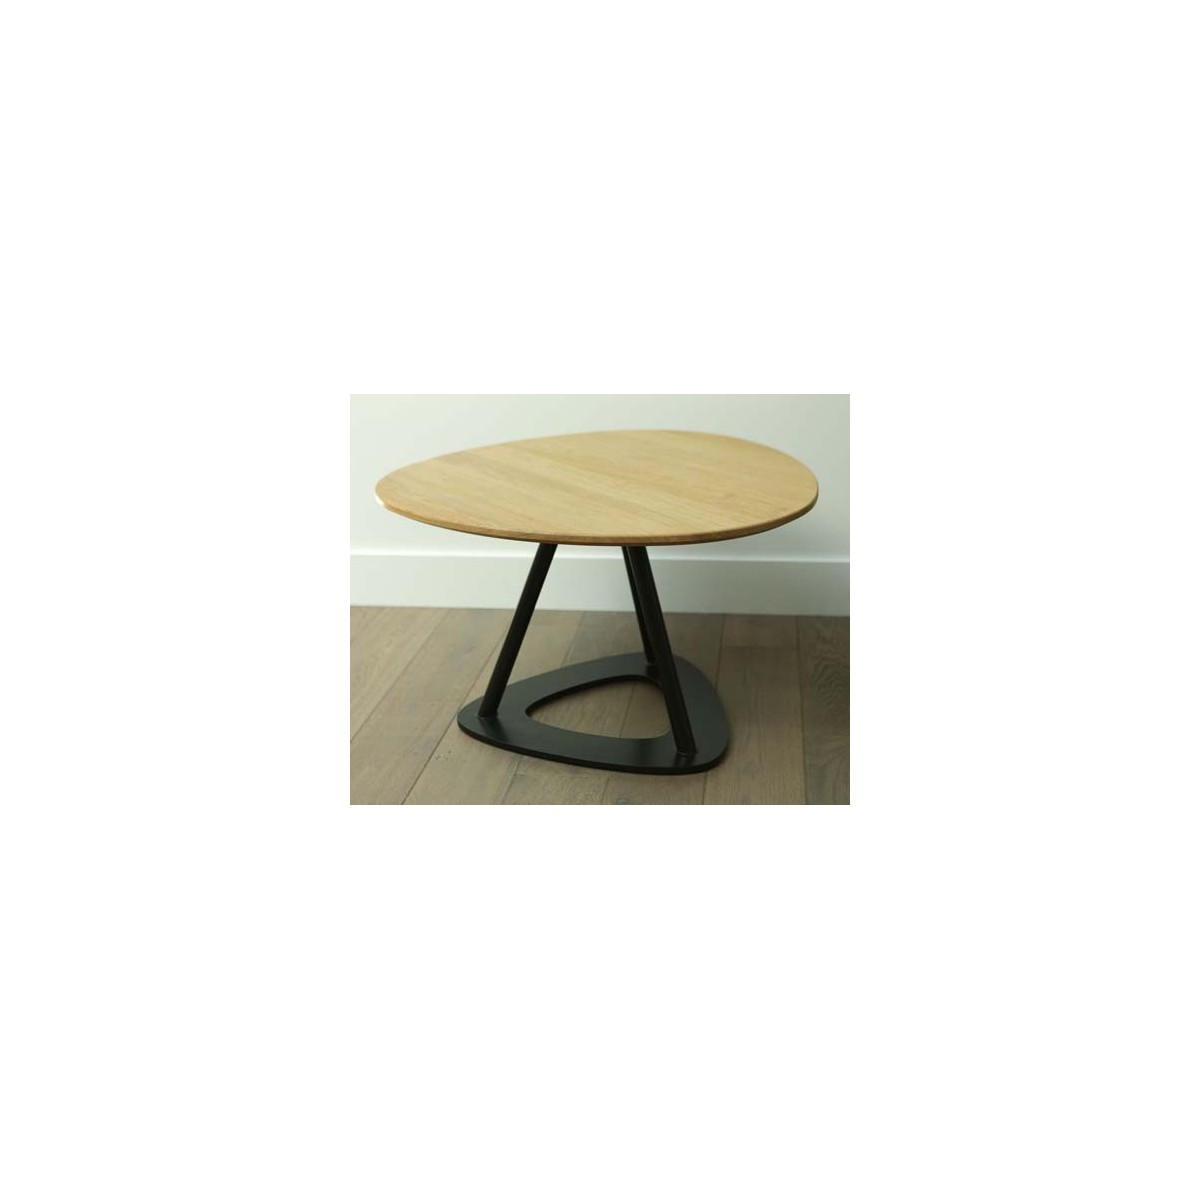 Table basse en bois contemporaine - Tables basses contemporaines ...